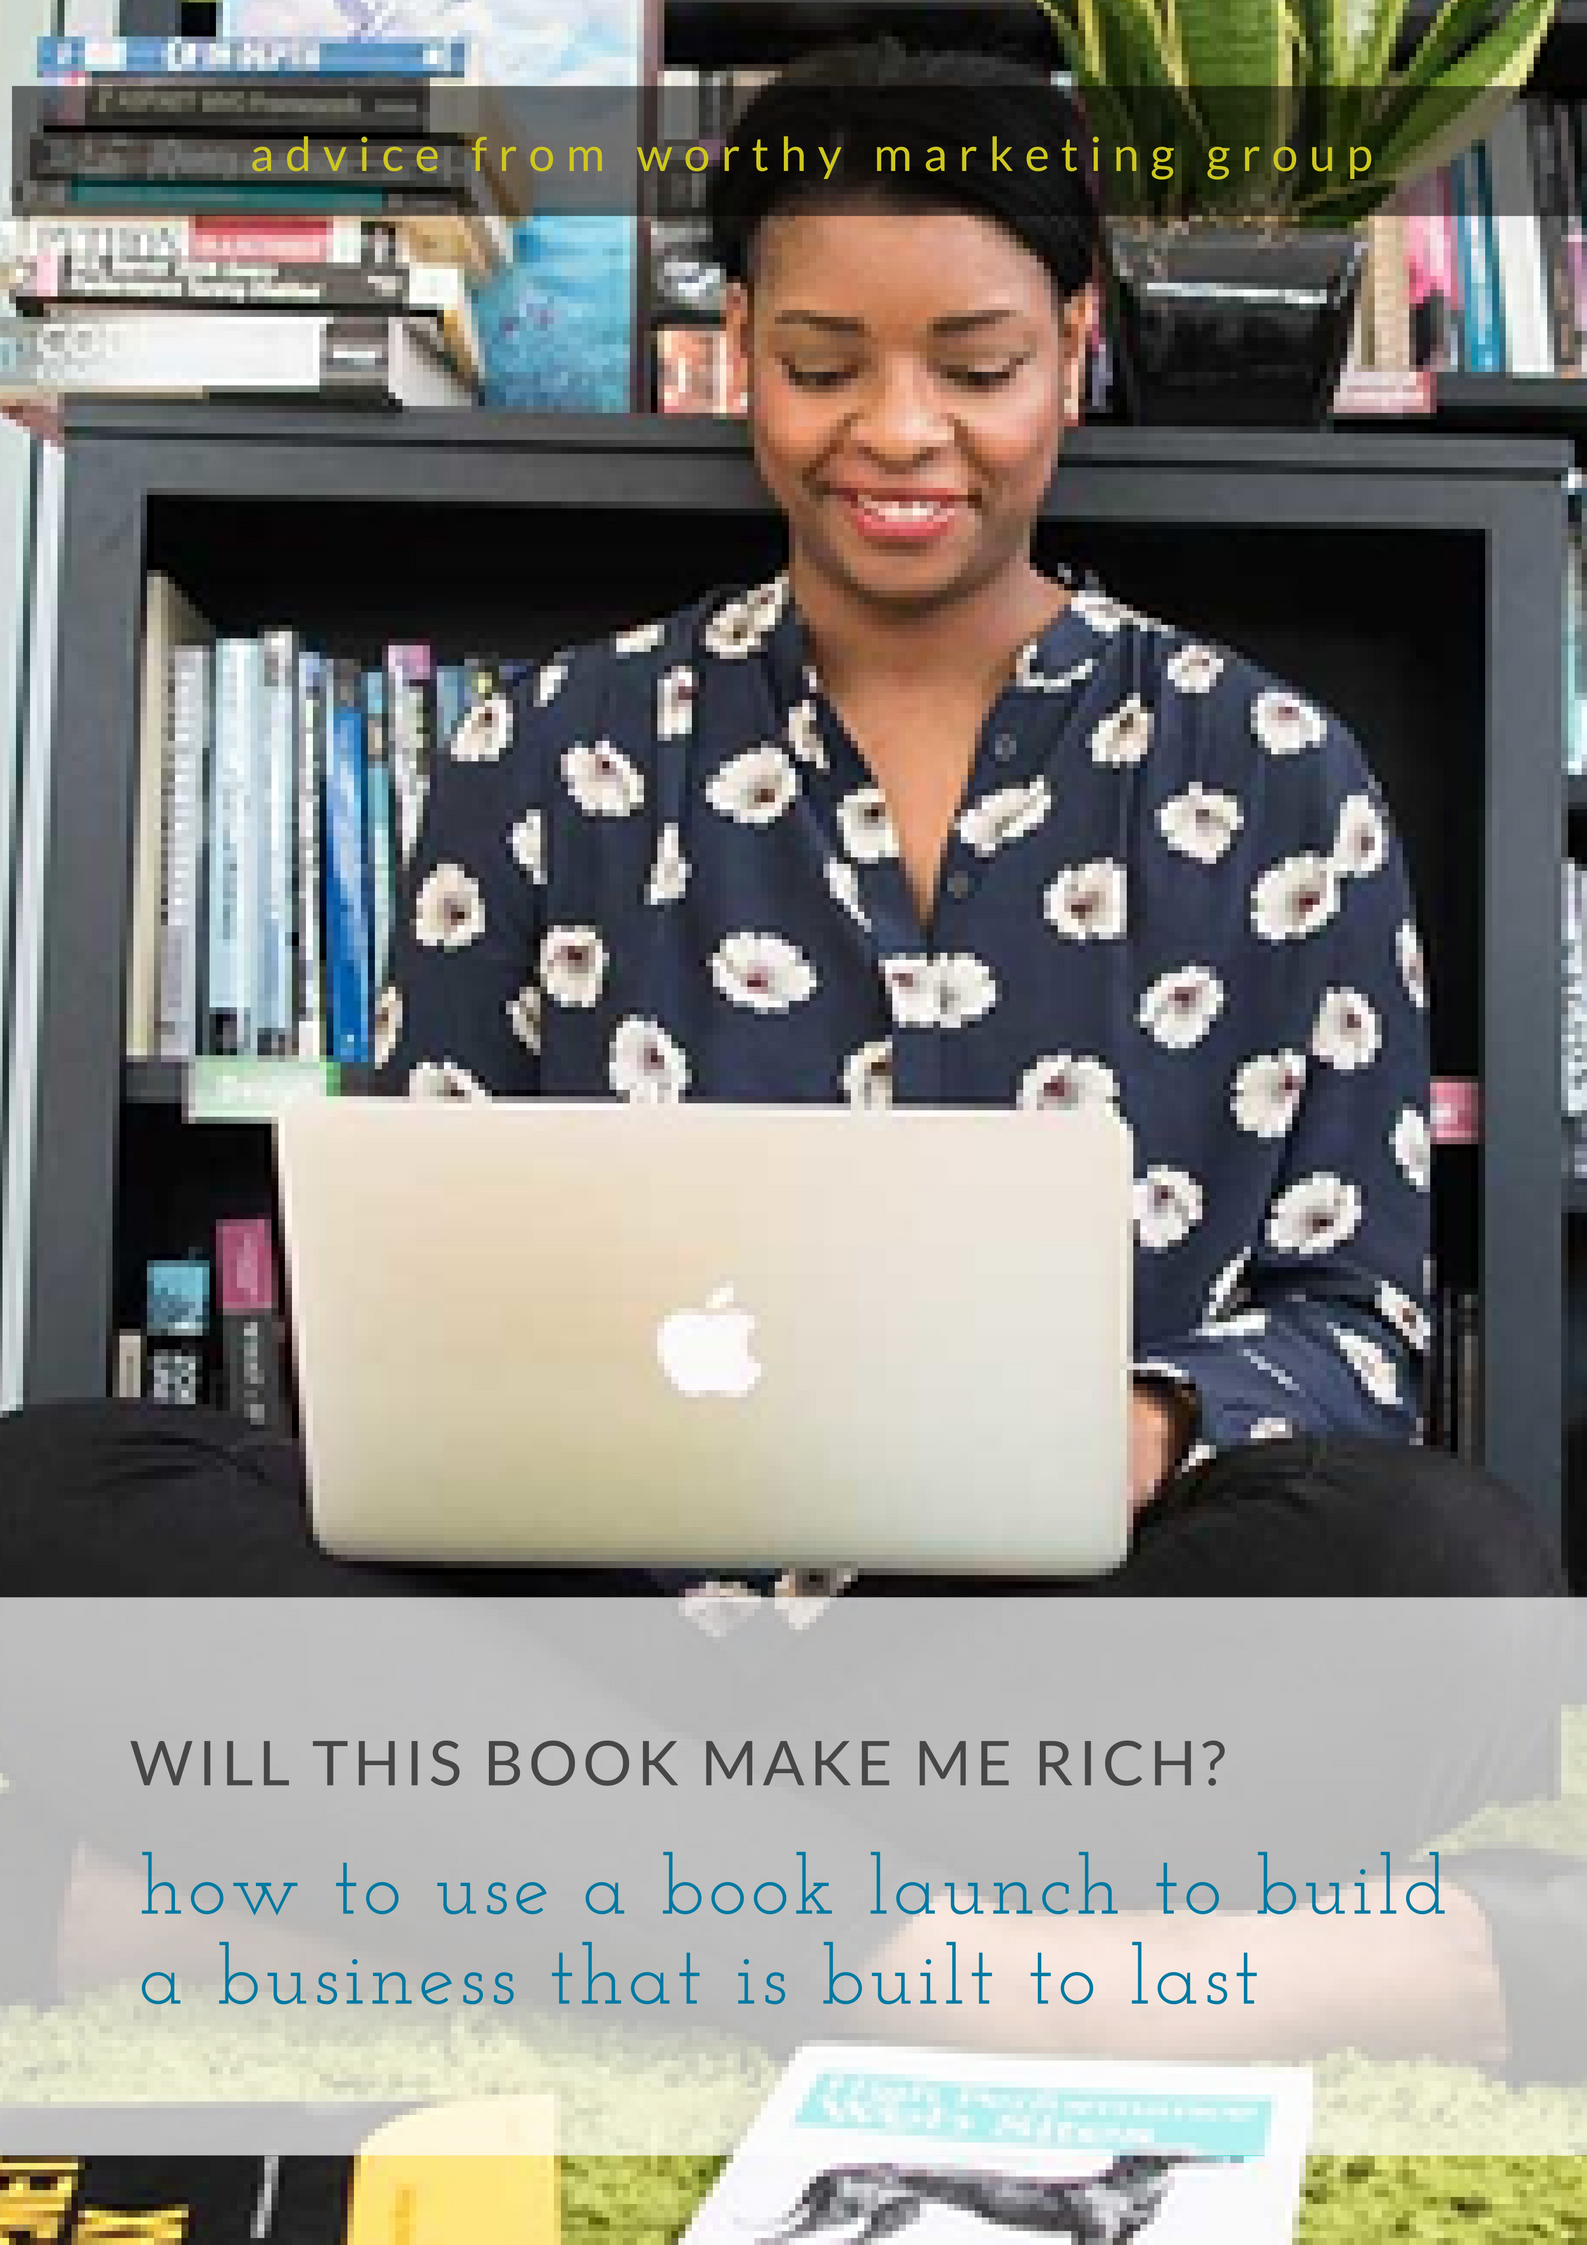 will this book make me rich? why you need a plan beyond your publishing date - book launch book to last | The Worthy Marketing Group Blog